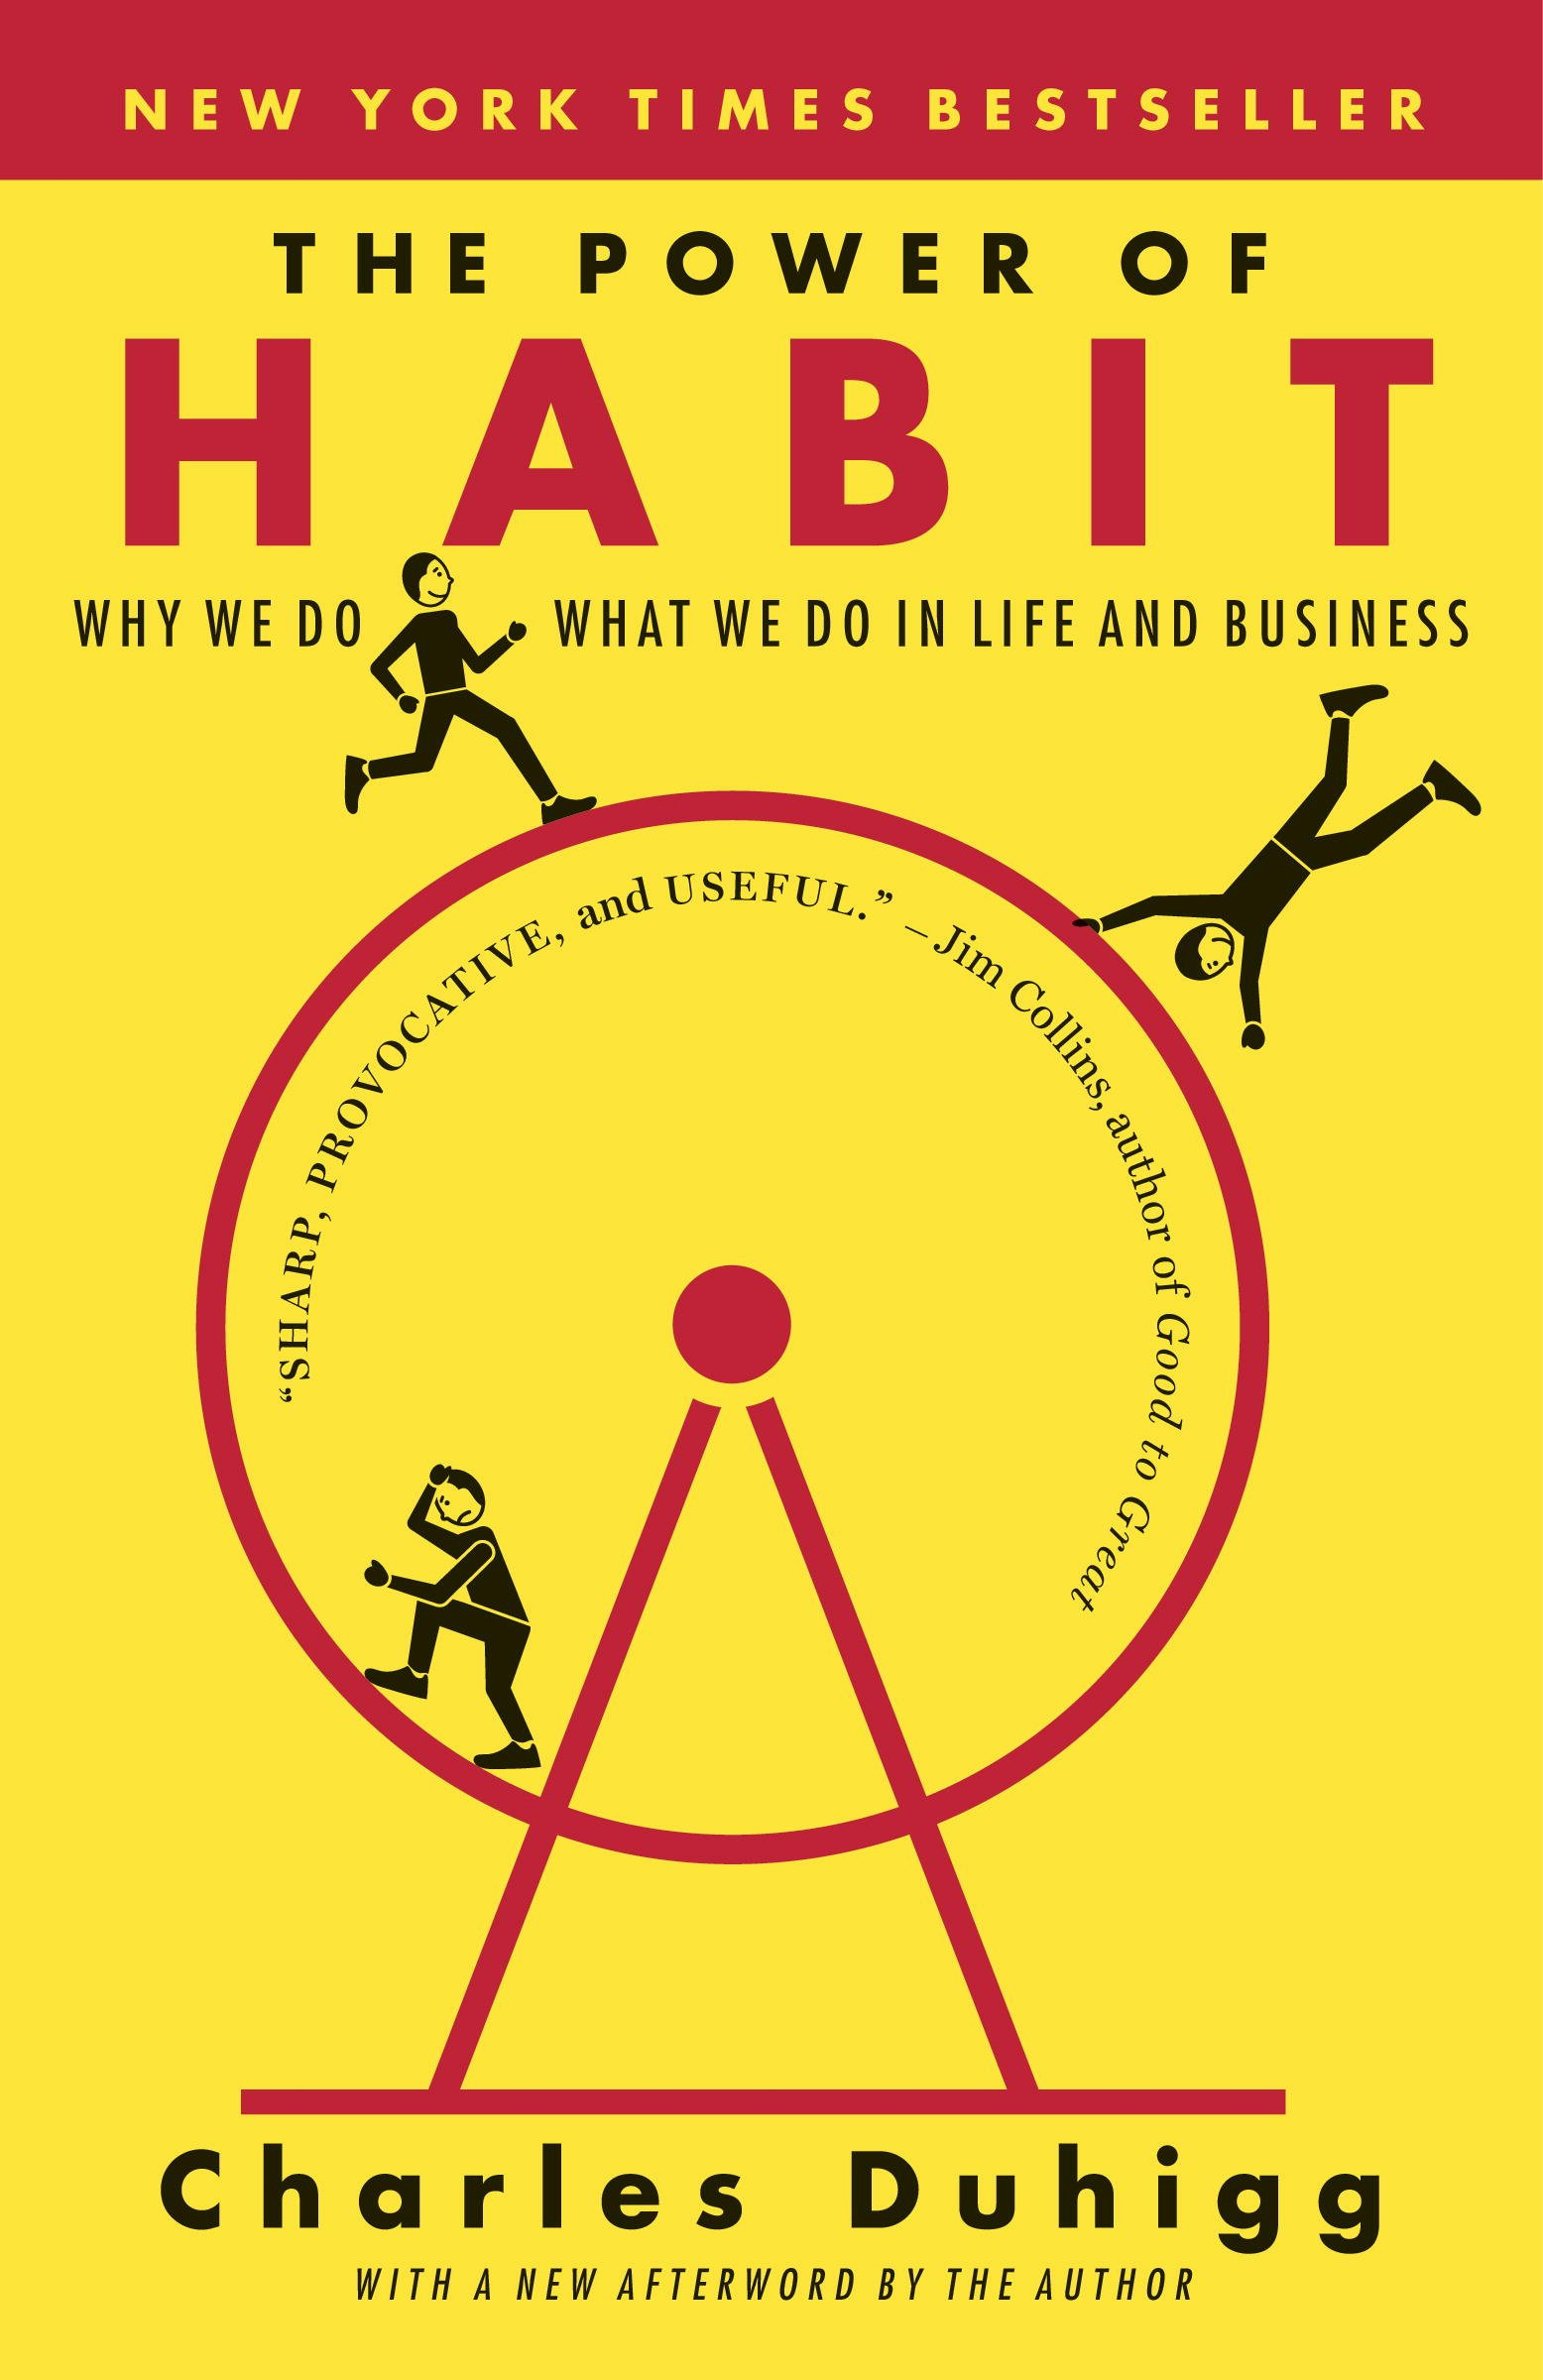 Review of Power of Habit by Charles Duhigg